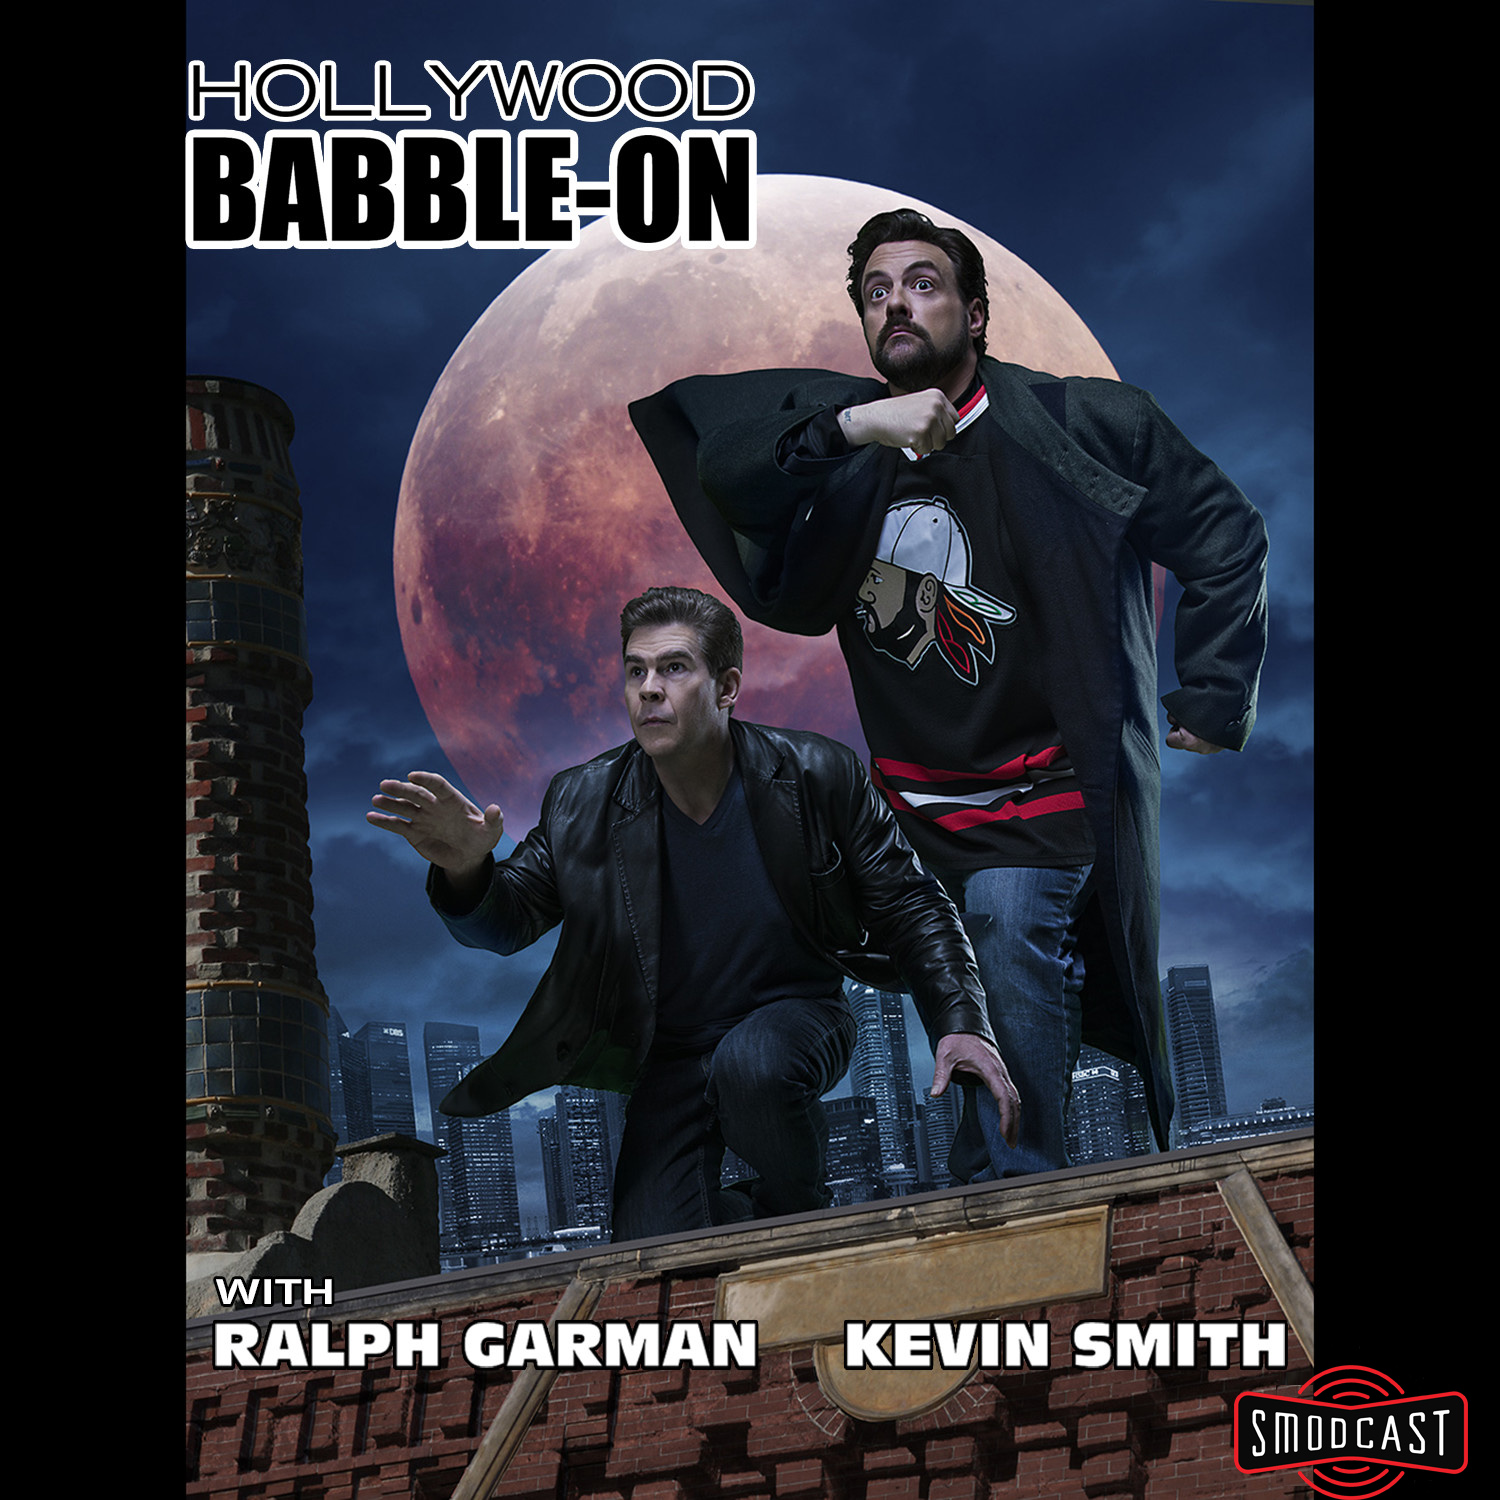 342: New Year's Babble-Eve Early Show 2018